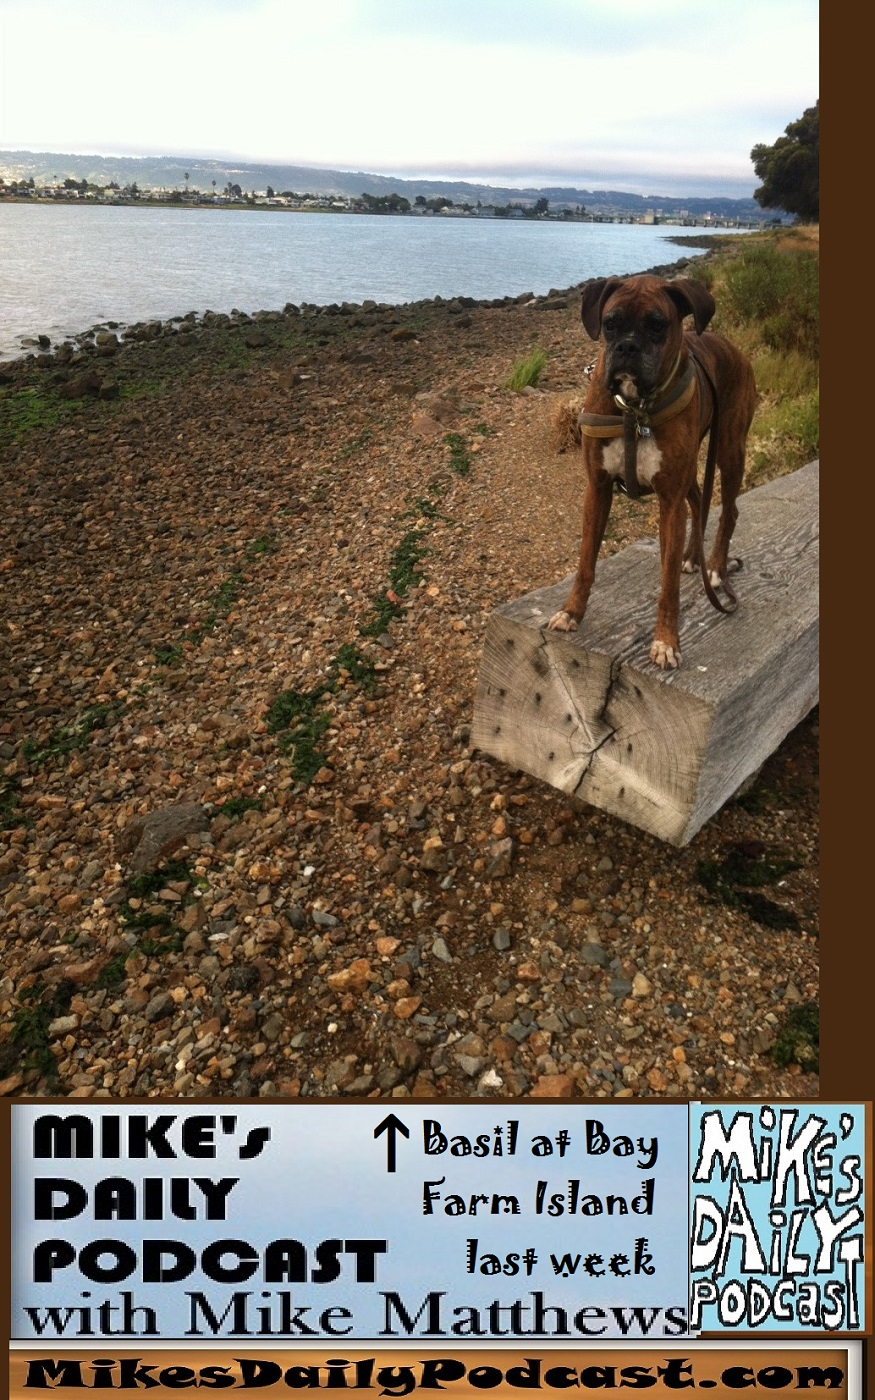 MIKEs DAILY PODCAST 1131 Bay Farm Island boxer